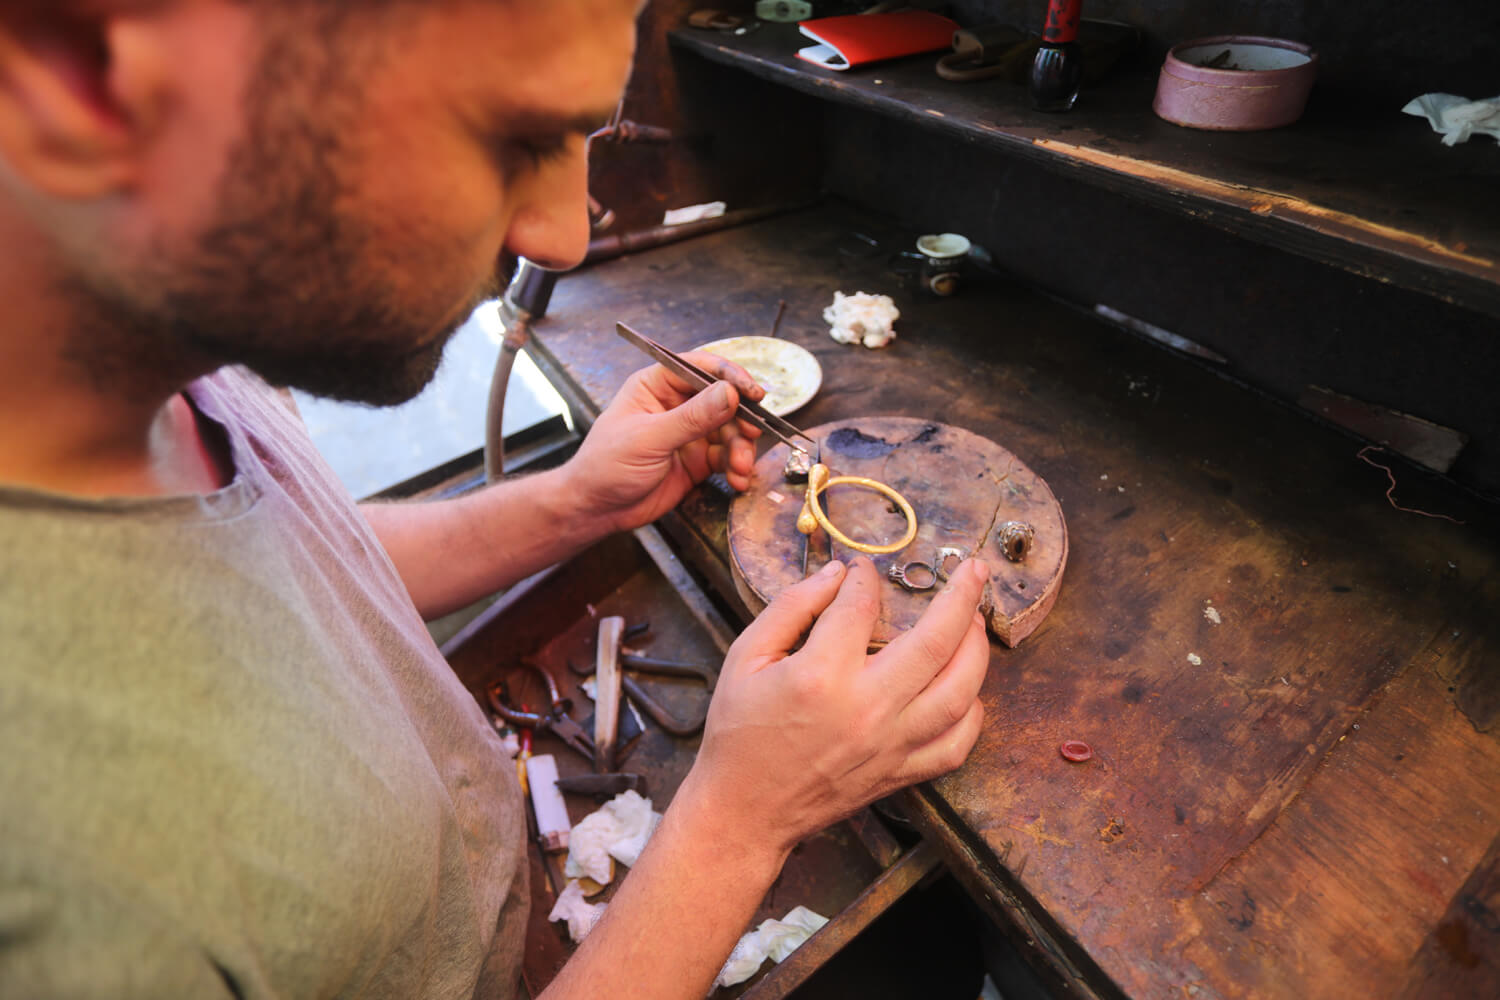 A goldsmith forms jewelry in a shop in Gaza City. (Photo: Mohammed Asad)